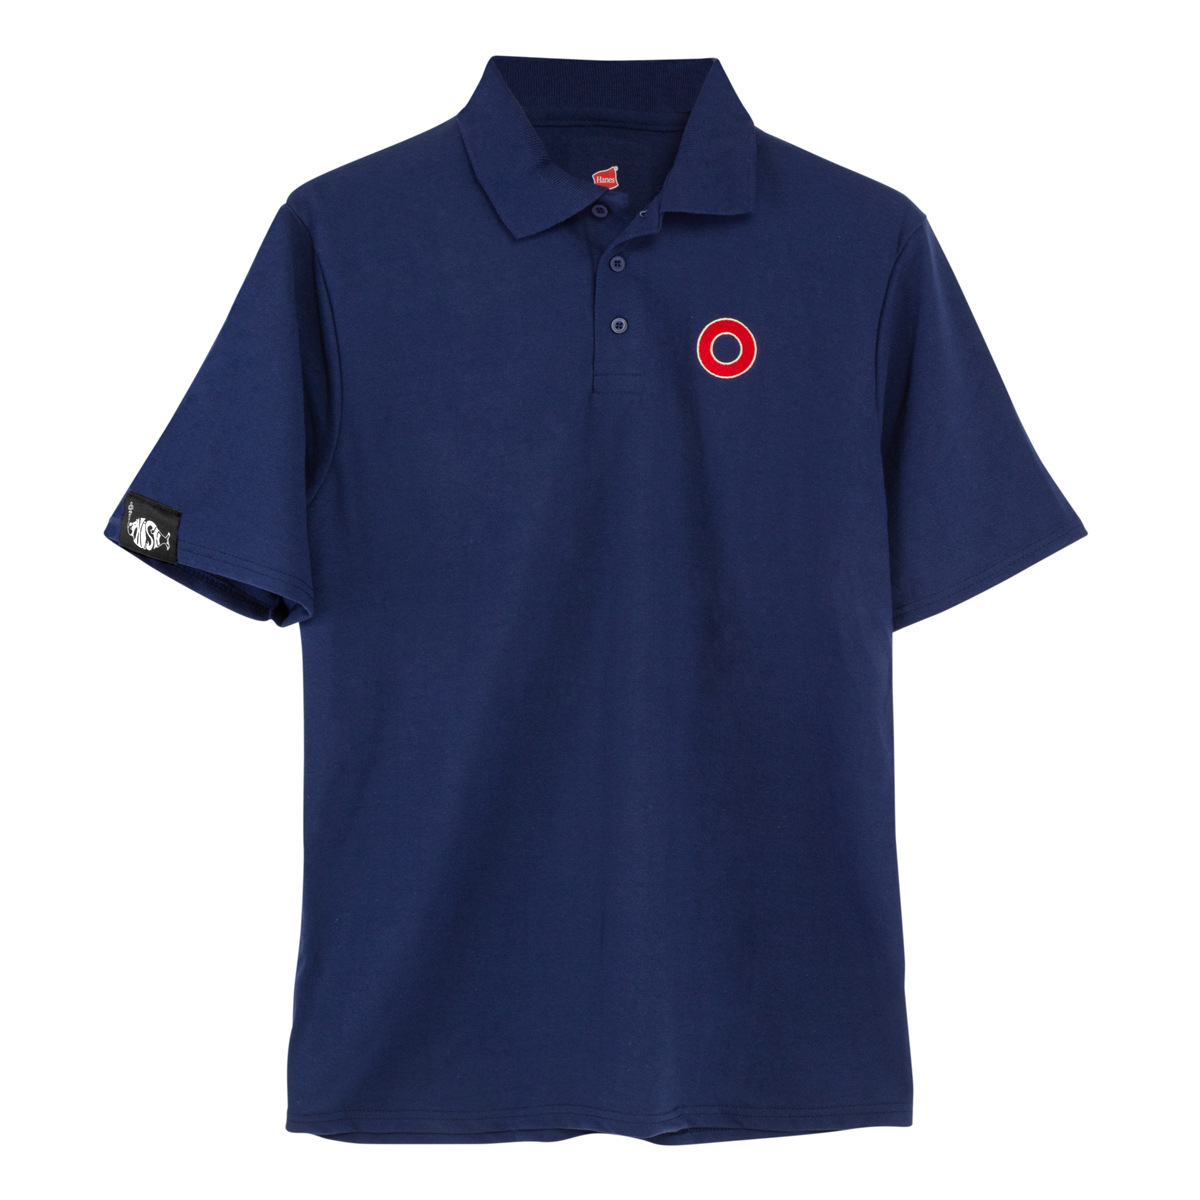 Donut Performance Pique Polo Shirt